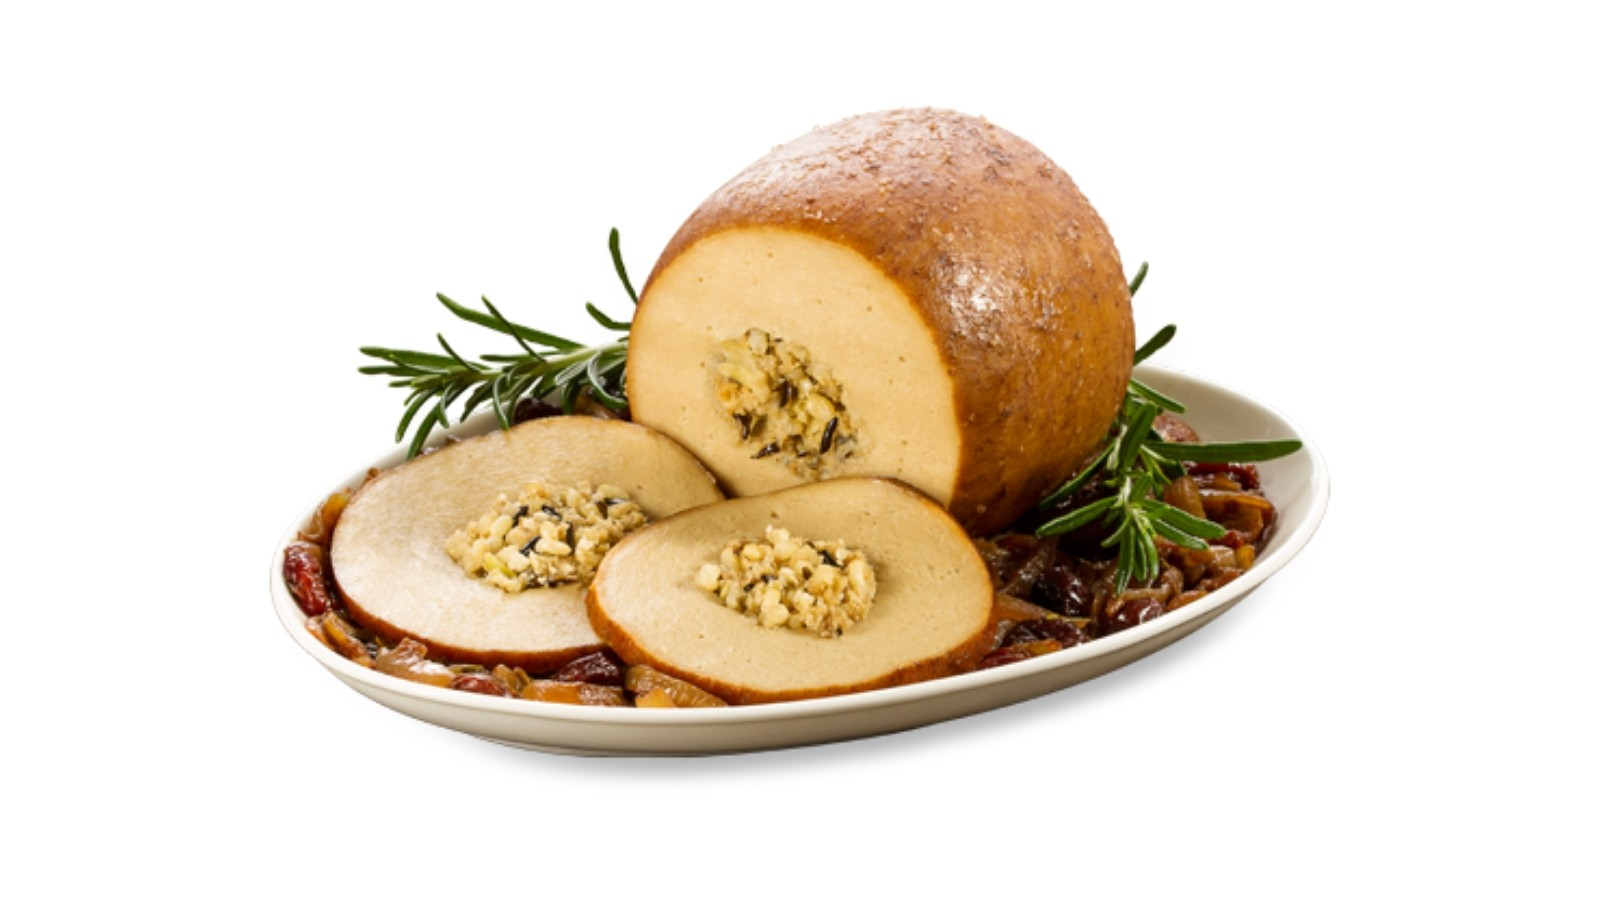 The Tofurky roast is probably the closest you can get to an off-the-shelf meat-free turkey with stuffing